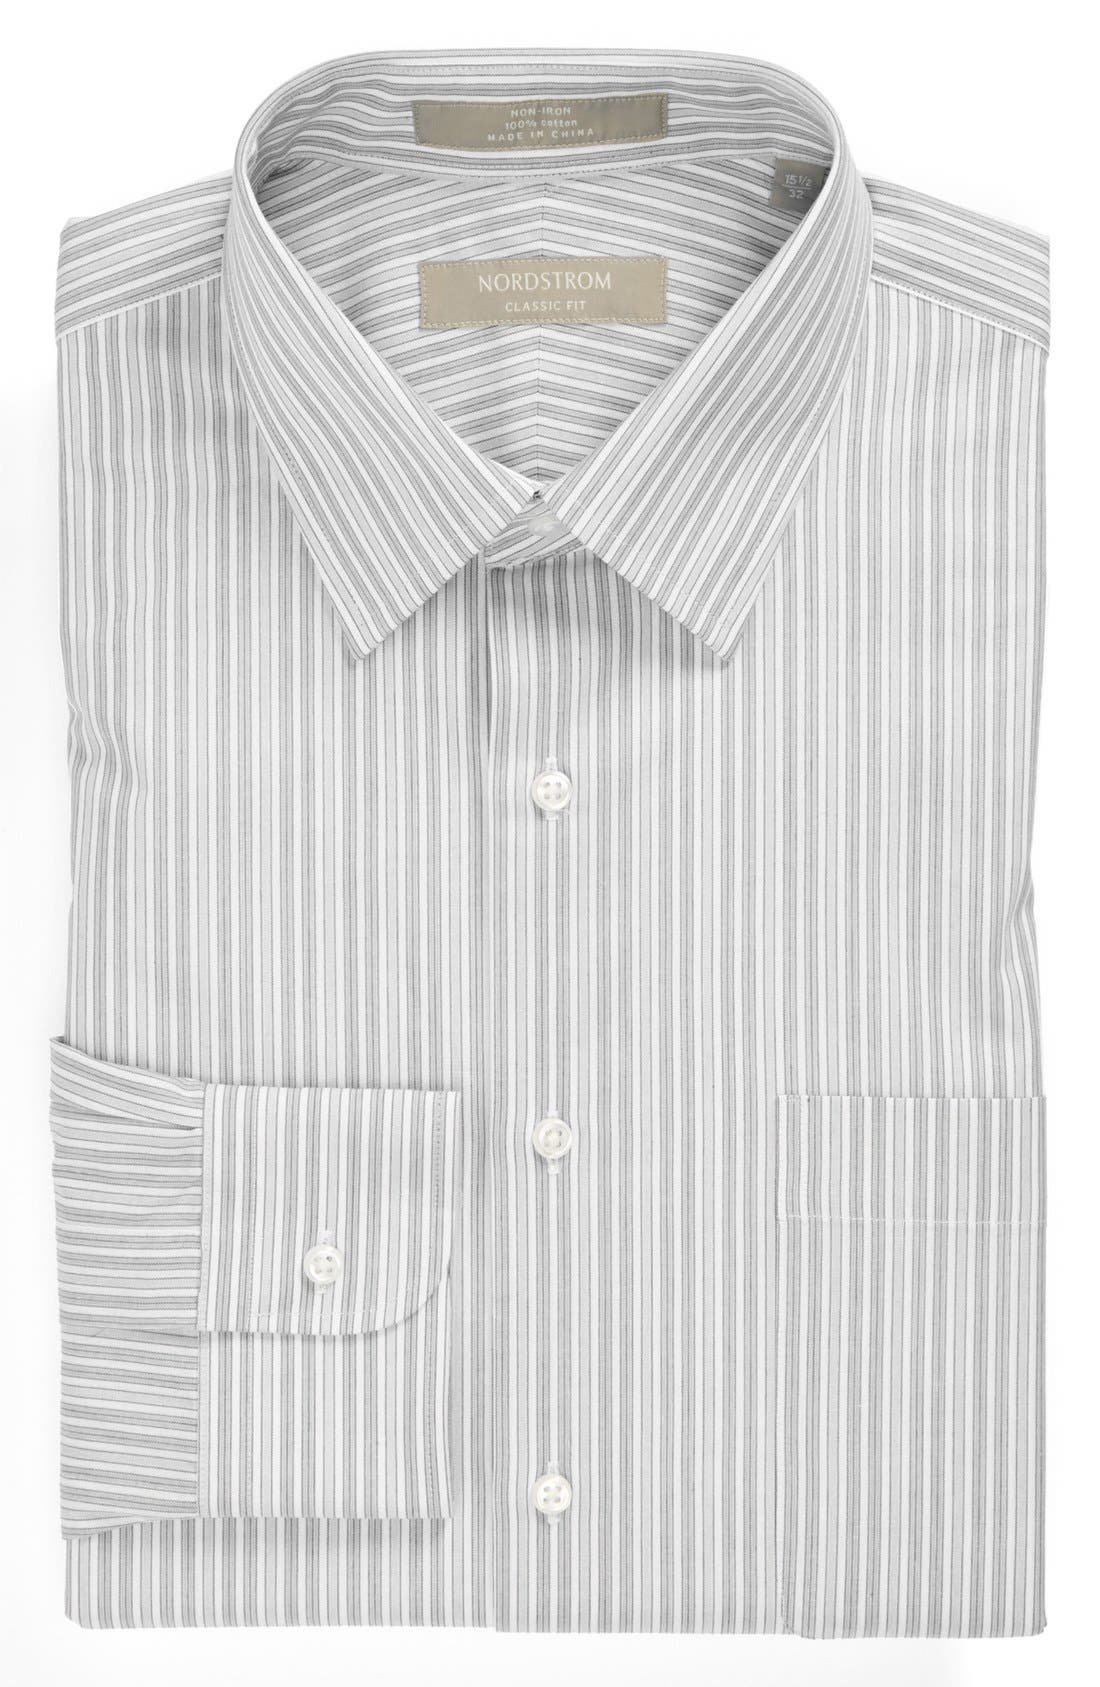 Nordstrom Classic Fit Non-Iron Dress Shirt,                         Main,                         color, Grey- Horizon